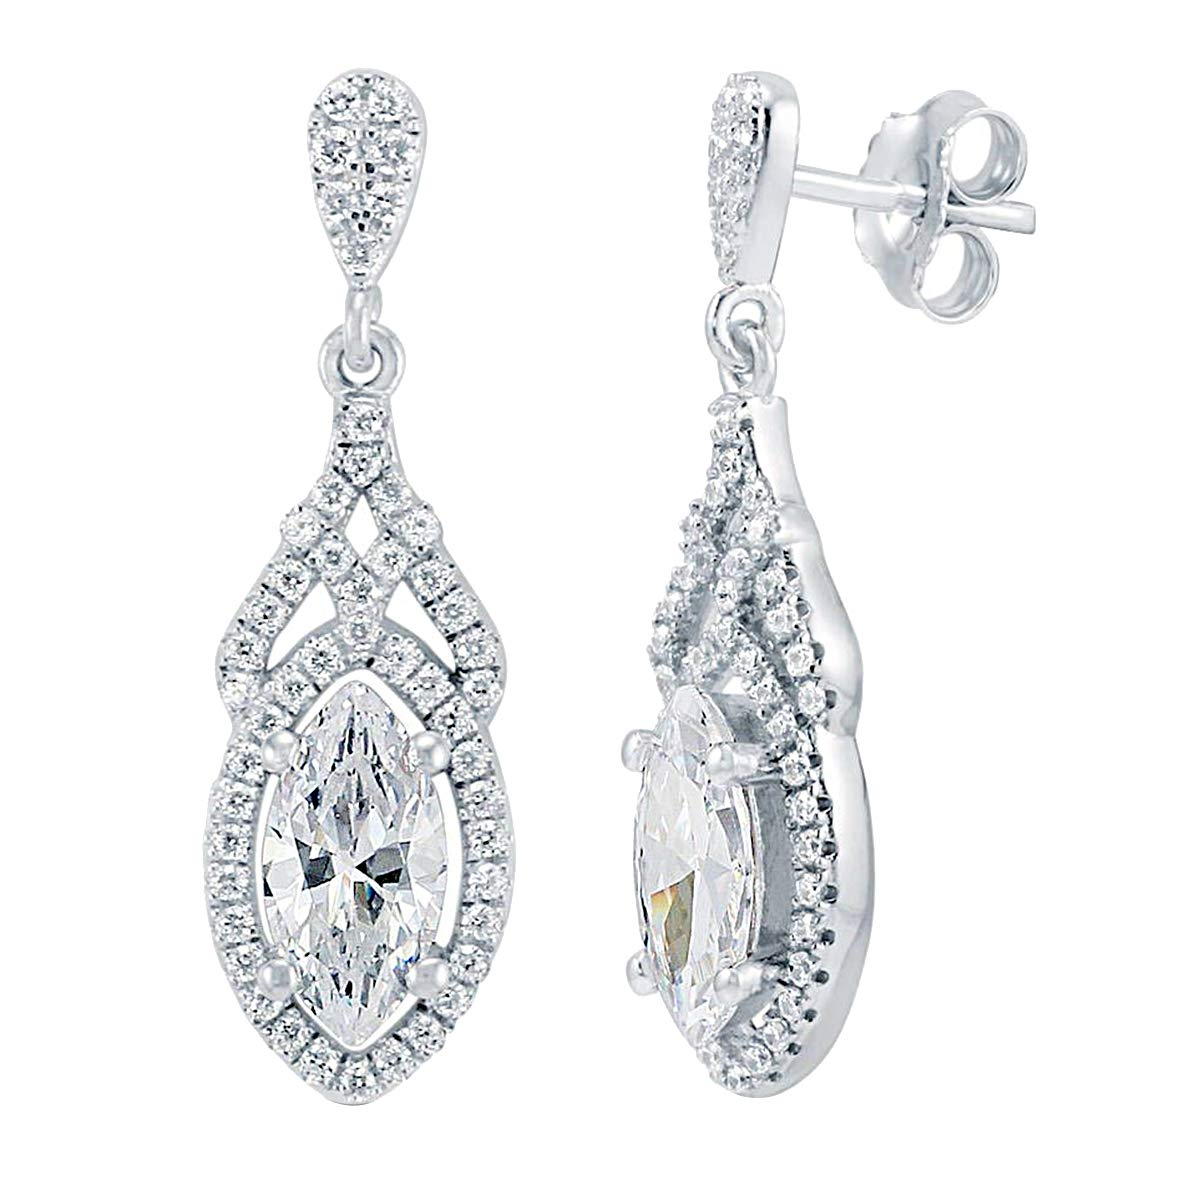 2.00 Ct Marquise /& Round Cut Simulated Diamond Halo Dangle Earrings .925 Sterling Silver